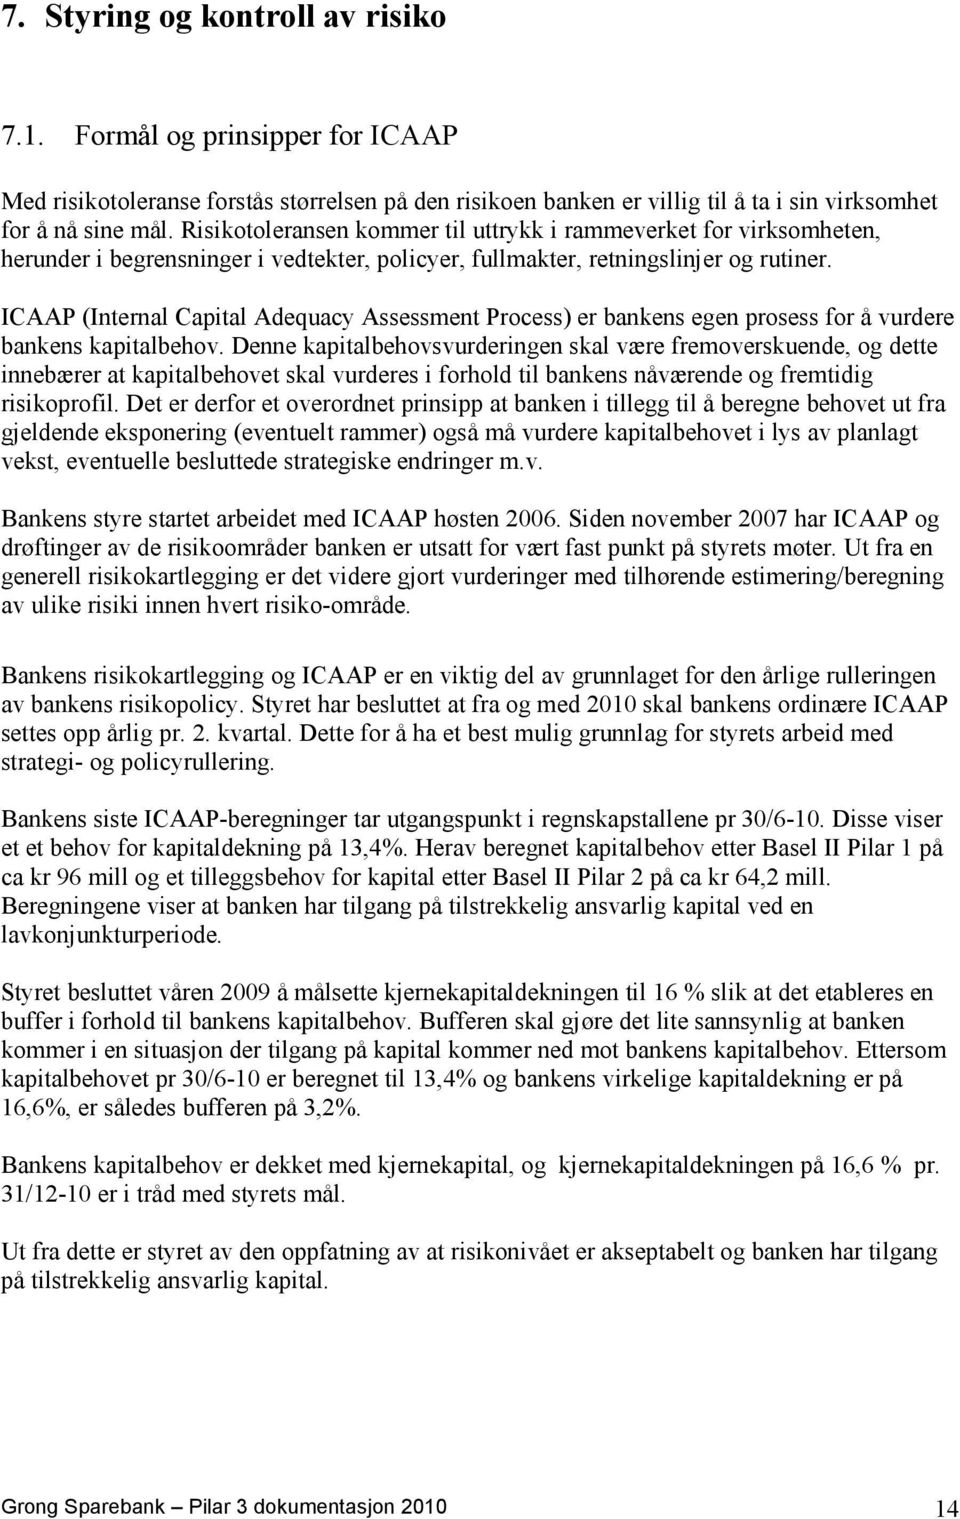 ICAAP (Internal Capital Adequacy Assessment Process) er bankens egen prosess for å vurdere bankens kapitalbehov.